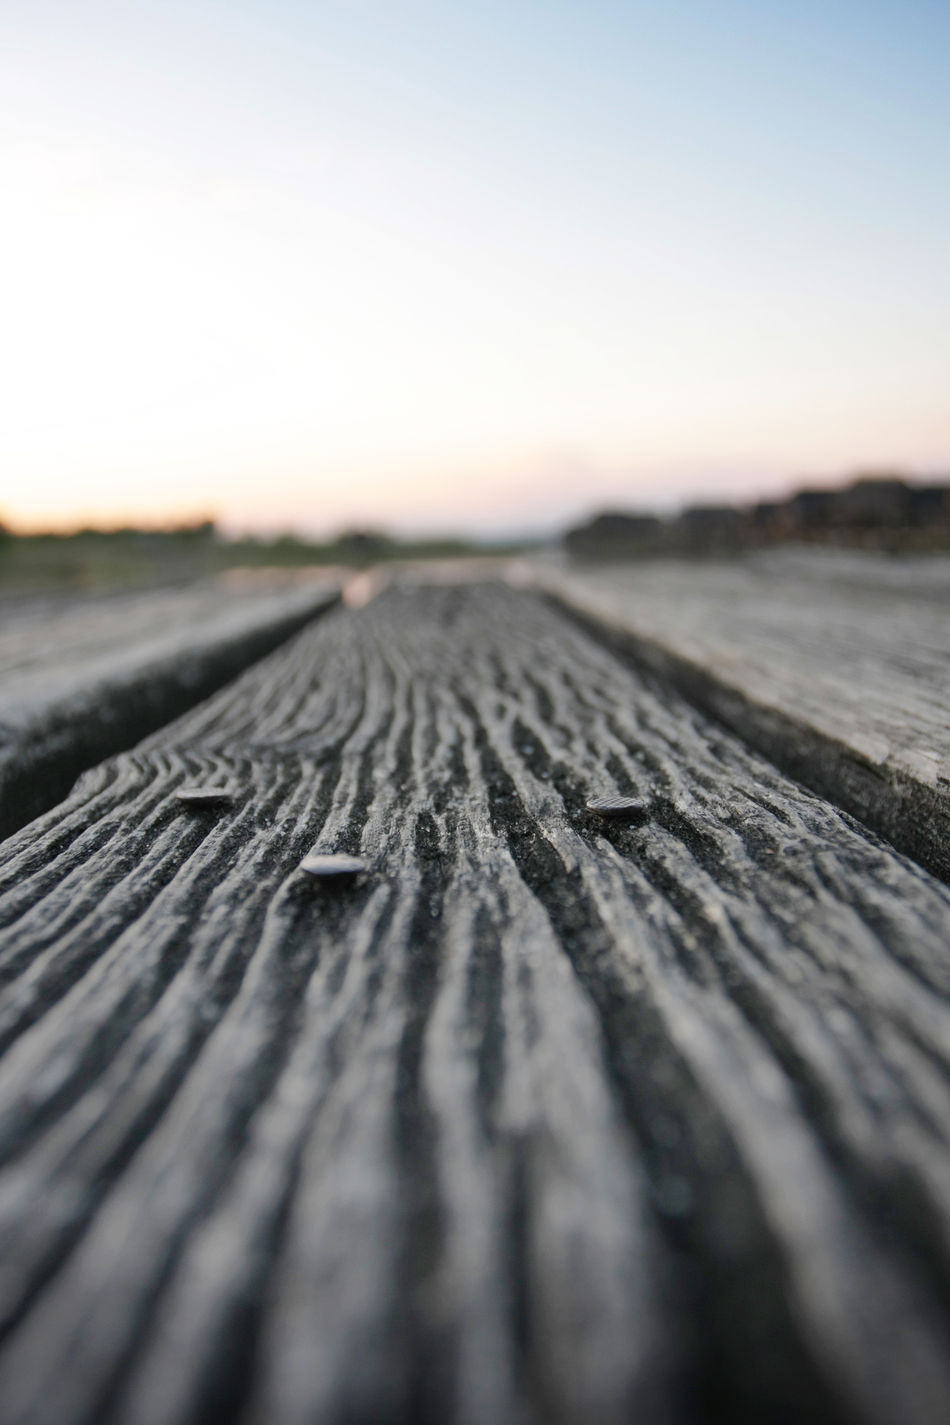 Beauty In Nature Brown Close-up Day Deck Detail Diminishing Perspective Floor Focus On Foreground Landscape Nature No People Outdoors Selective Focus Sky Surface Level Tranquil Scene Tranquility Wood - Material Wooden